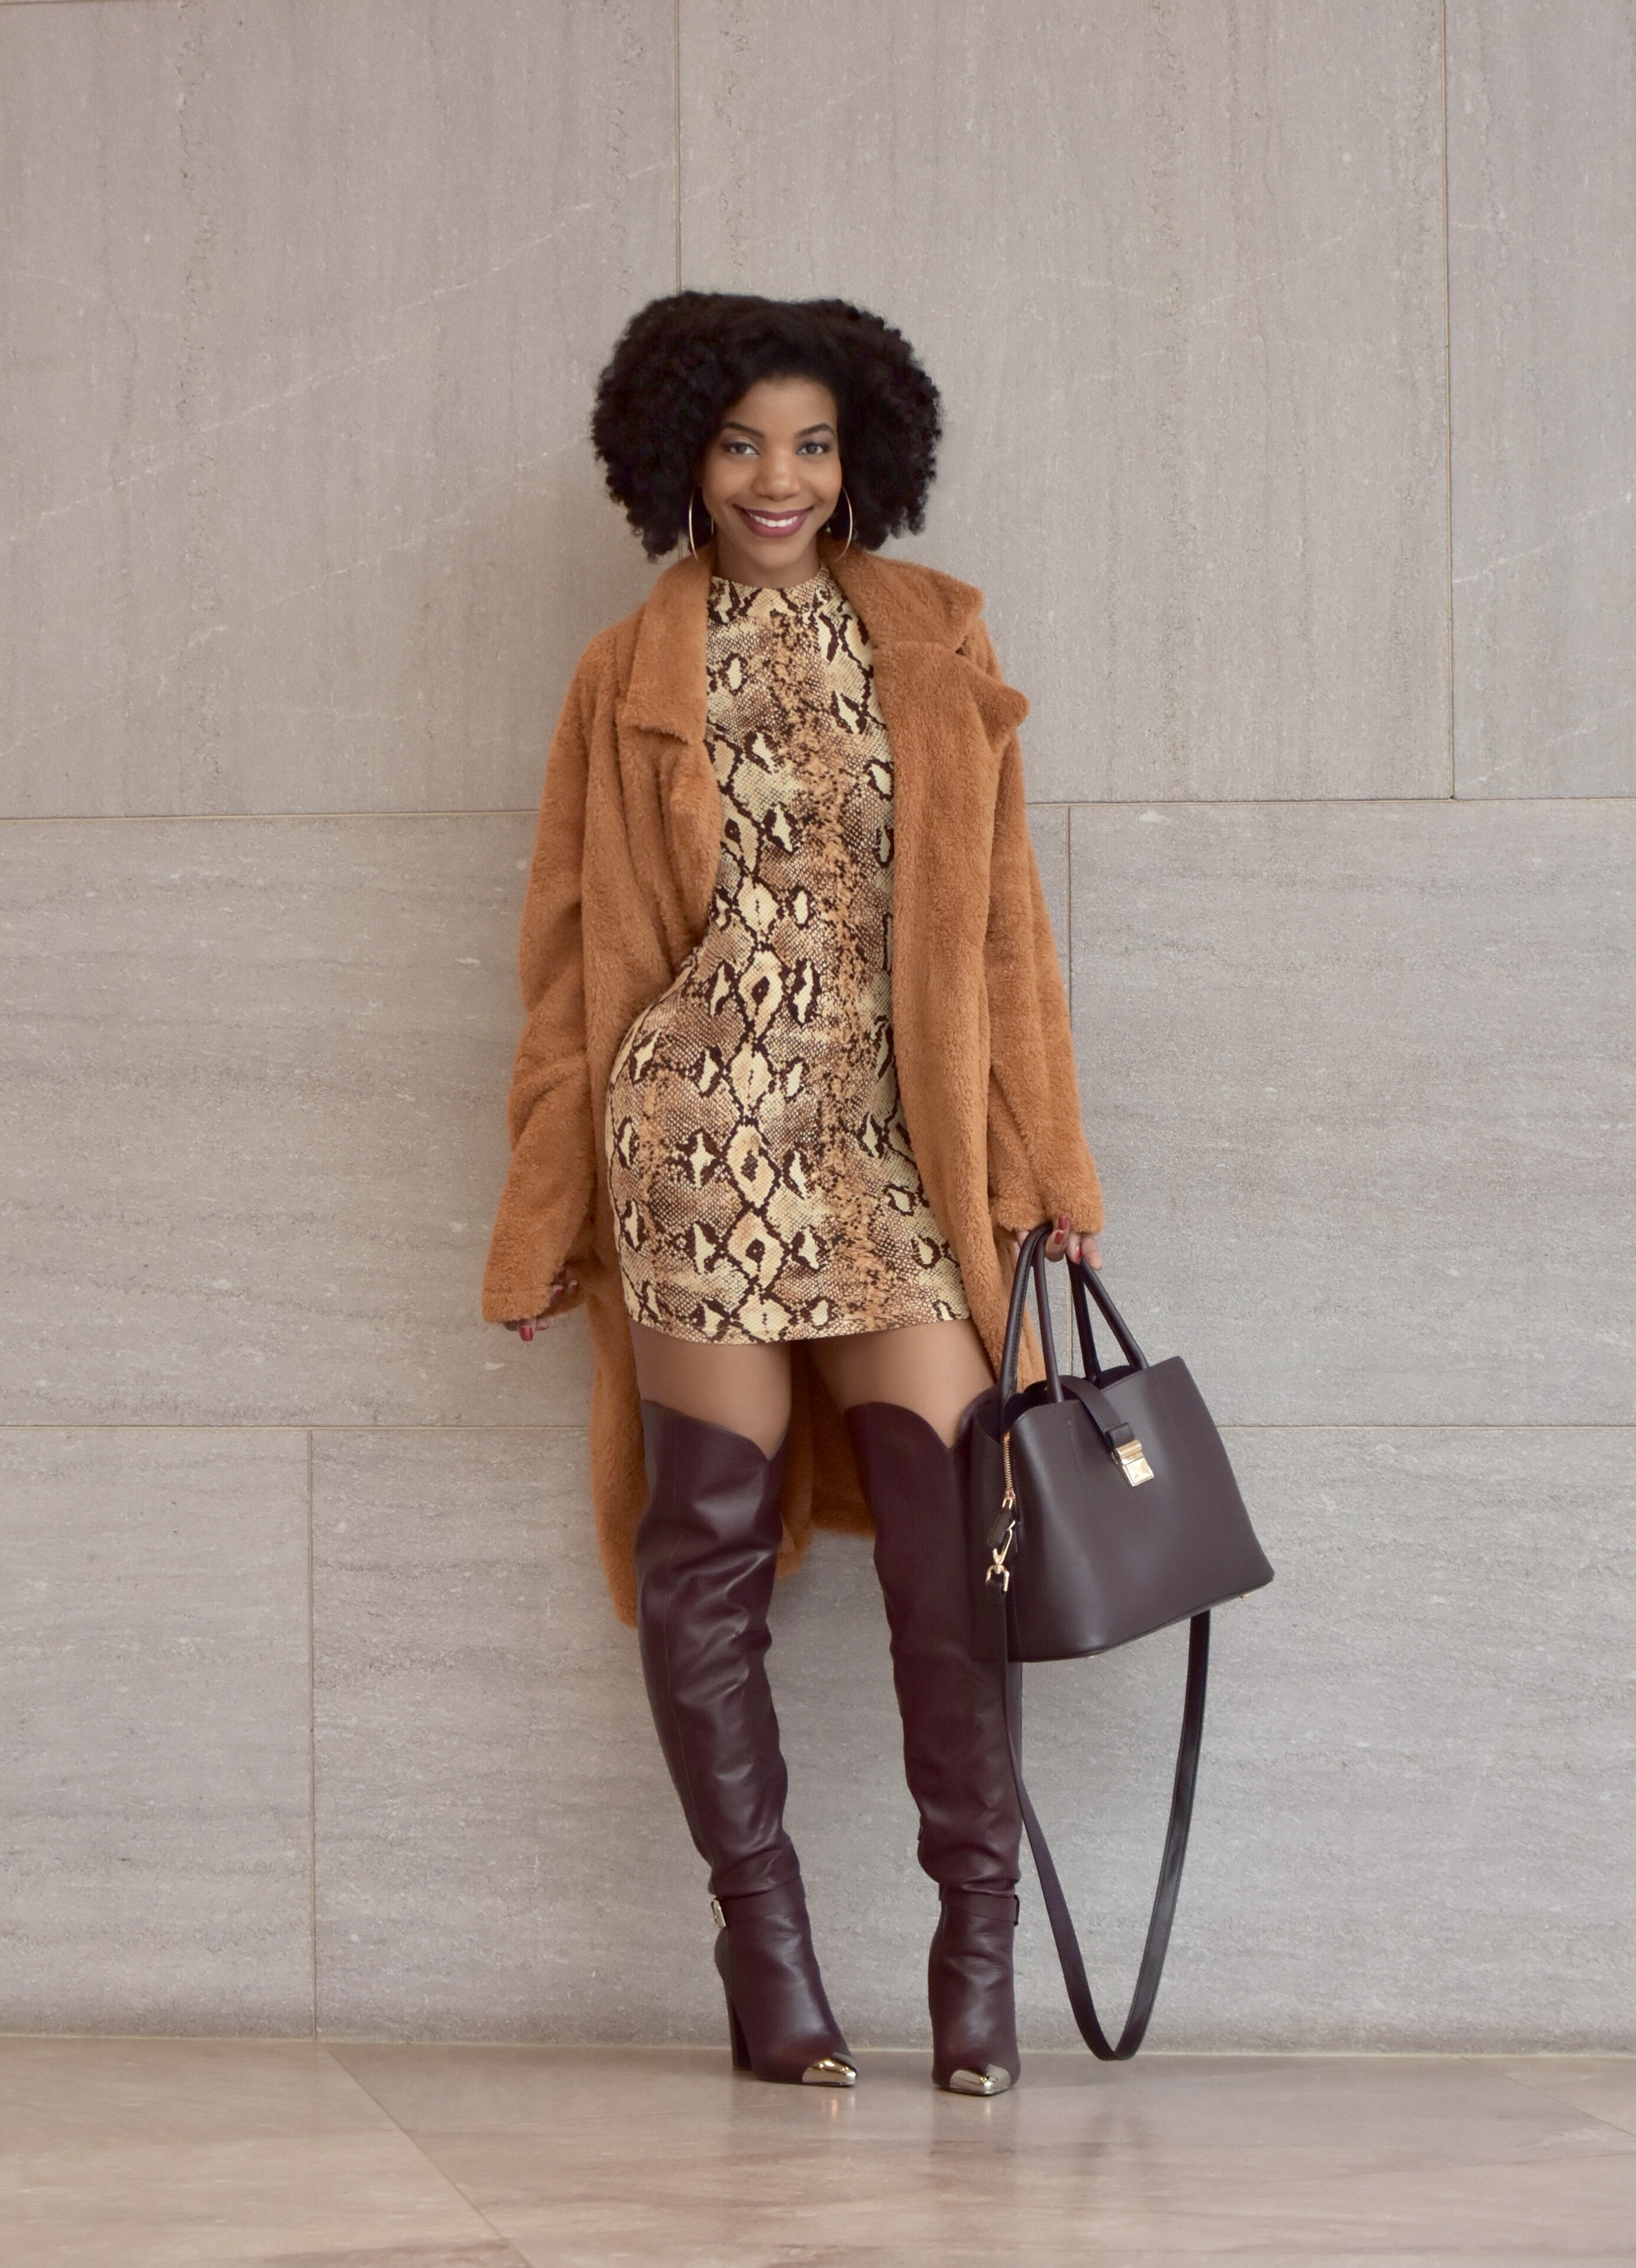 SHEIN Snake Skin Mock Neck Dress, http://bit.ly/2GejGwJ, Use my discount code Q1thestyleperk1 , Solid Long Teddy Coat, http://bit.ly/2MNmYZm, ShoeDazzle Dorothy Over The Knee Boot in Bordeaux, H&M Burgundy Satchel Purse